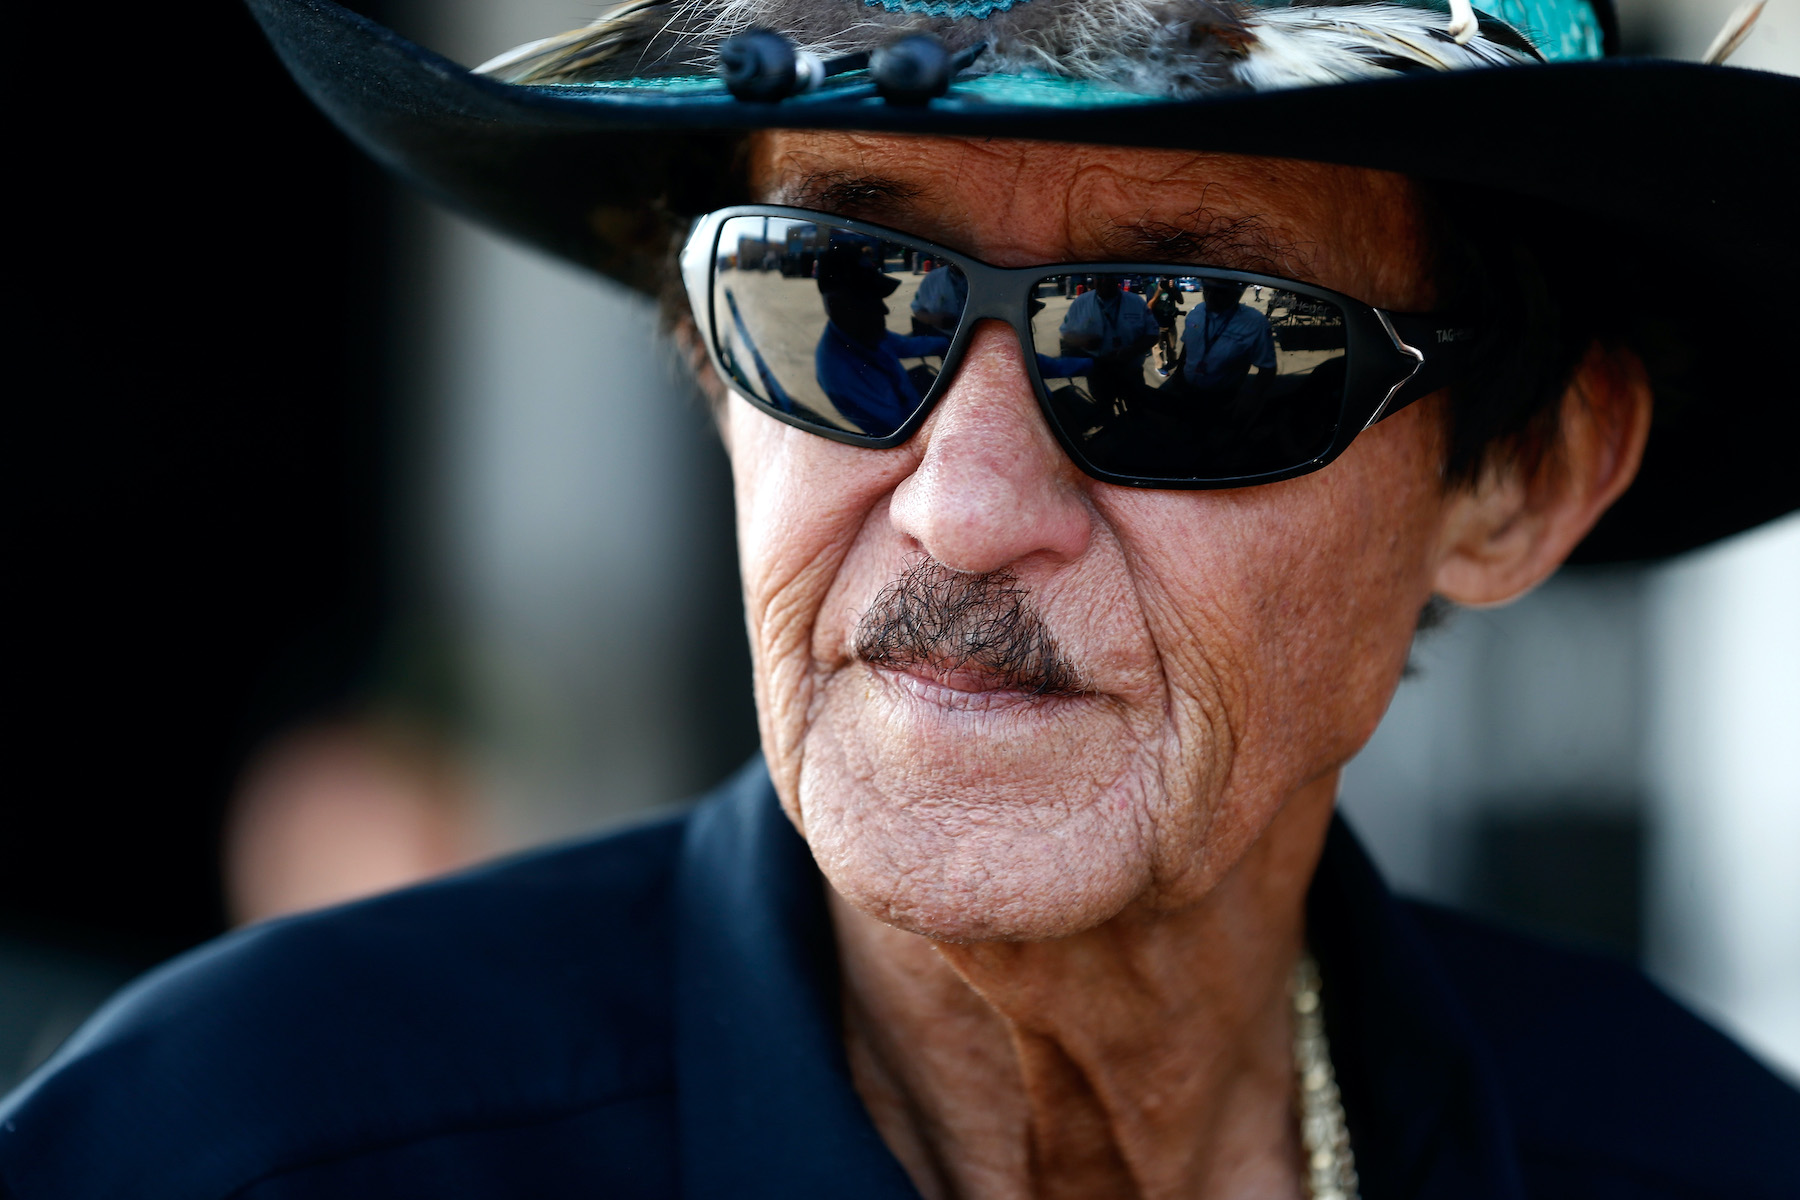 Richard Petty Never Forgave Himself for an Accident That Killed a Fan